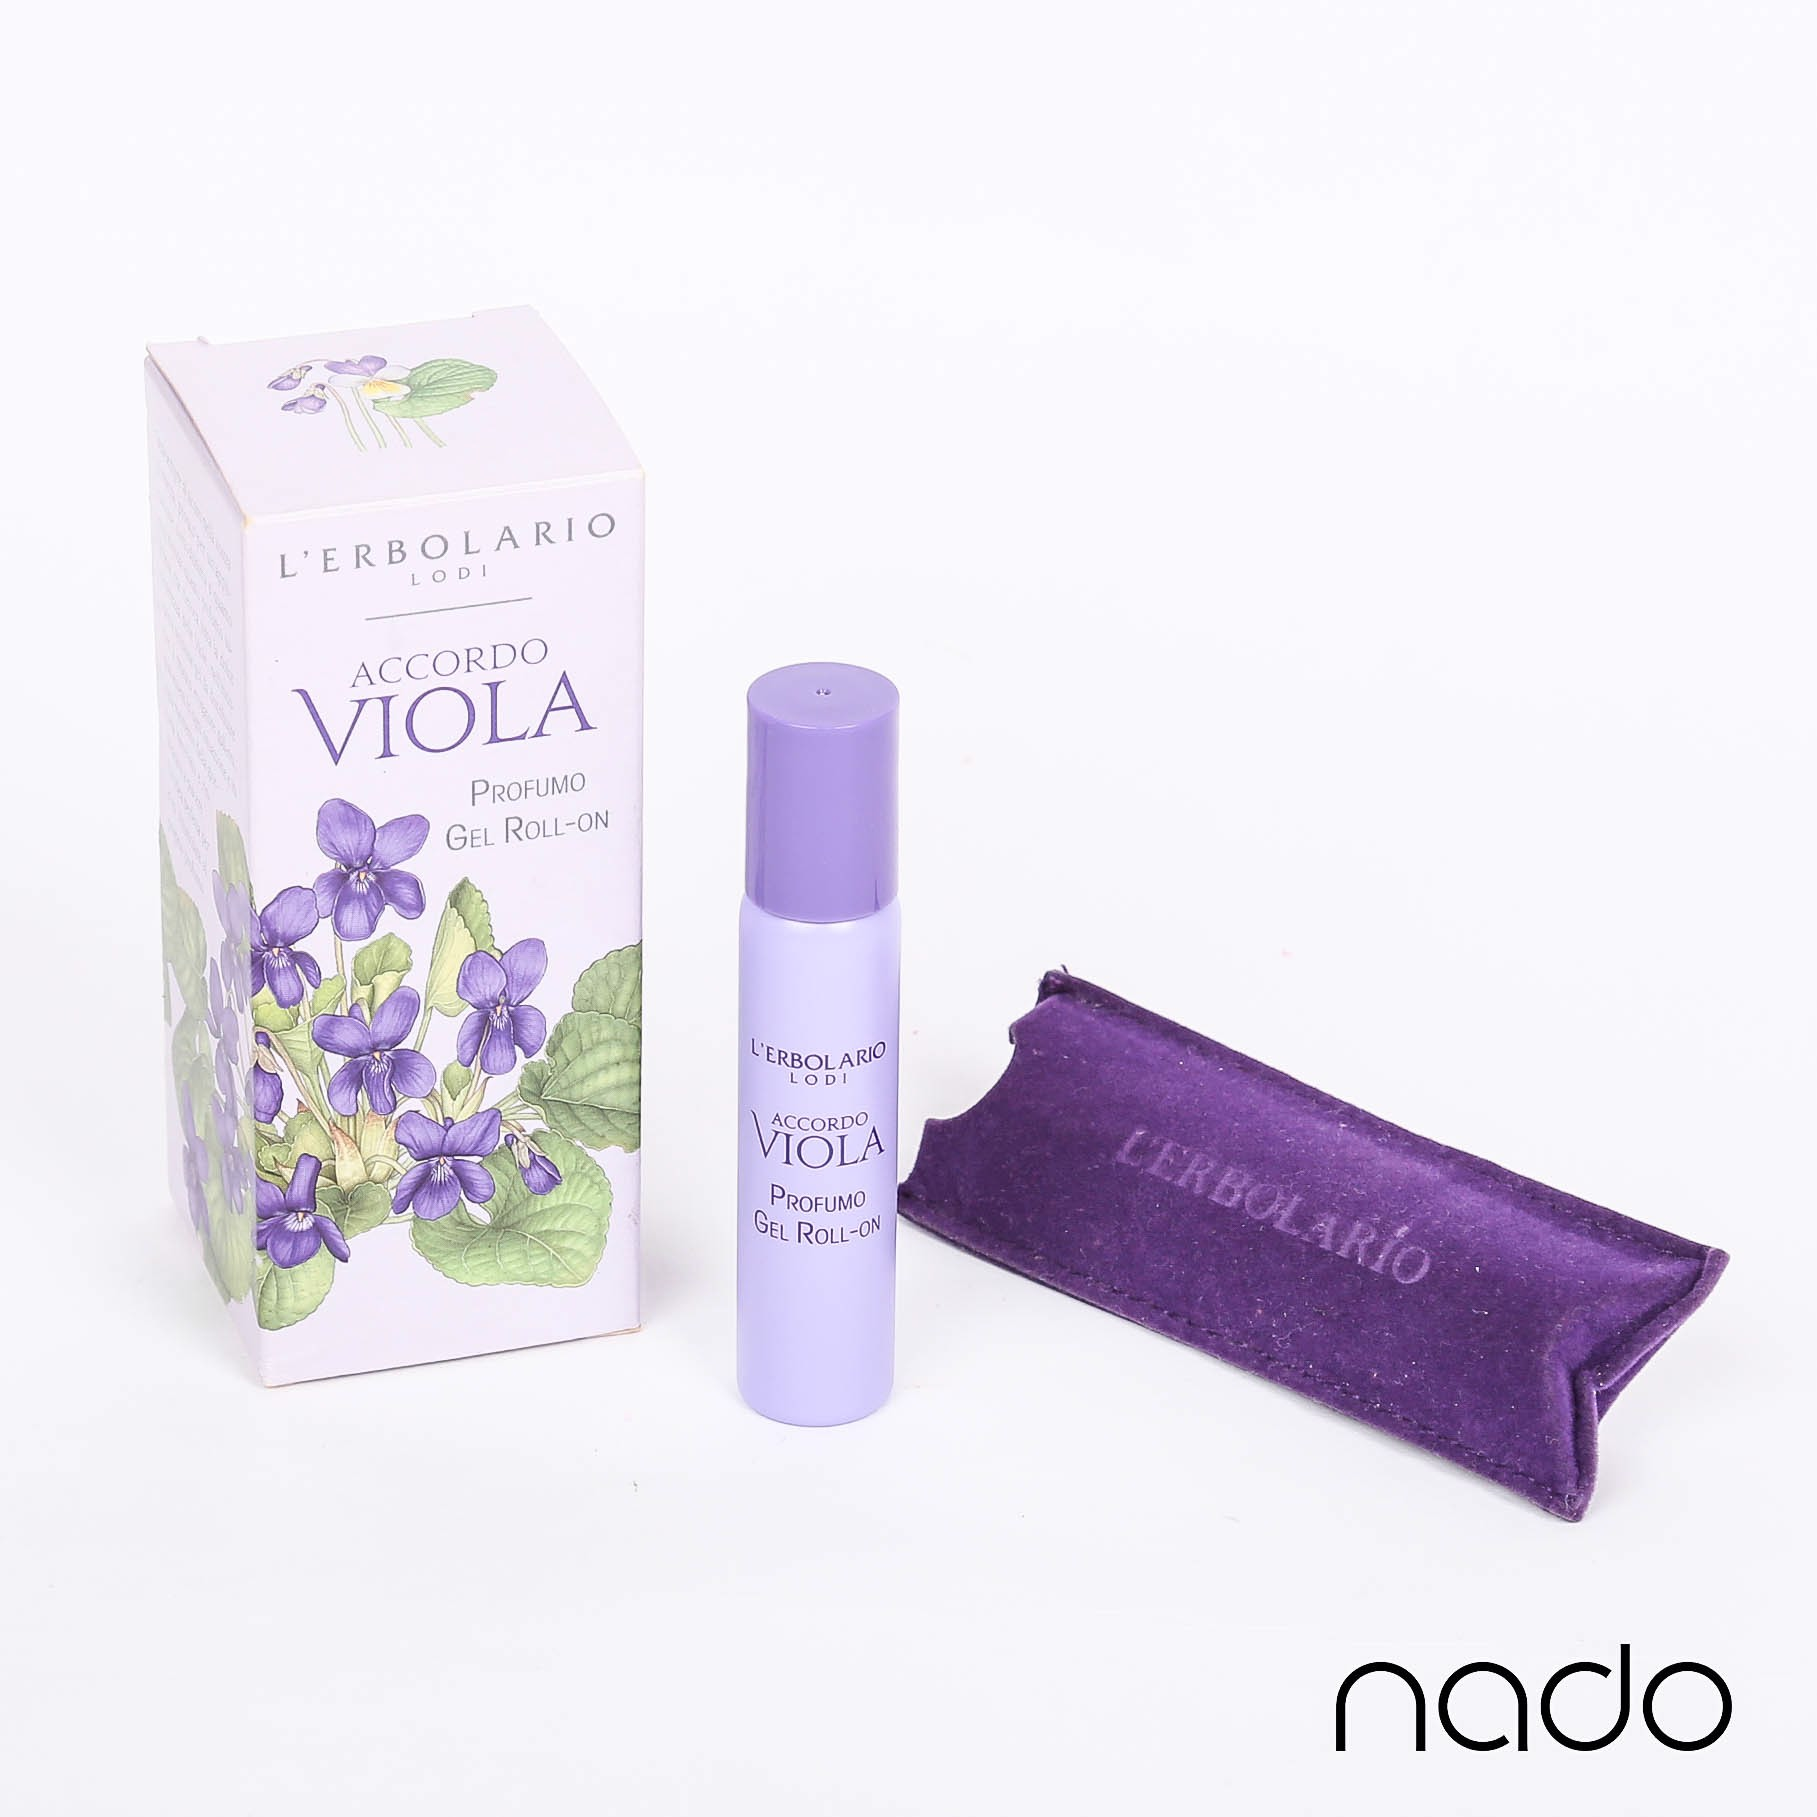 L'ERBOLARIO ACCORDO VIOLA PROFUMO GEL ROLL-ON